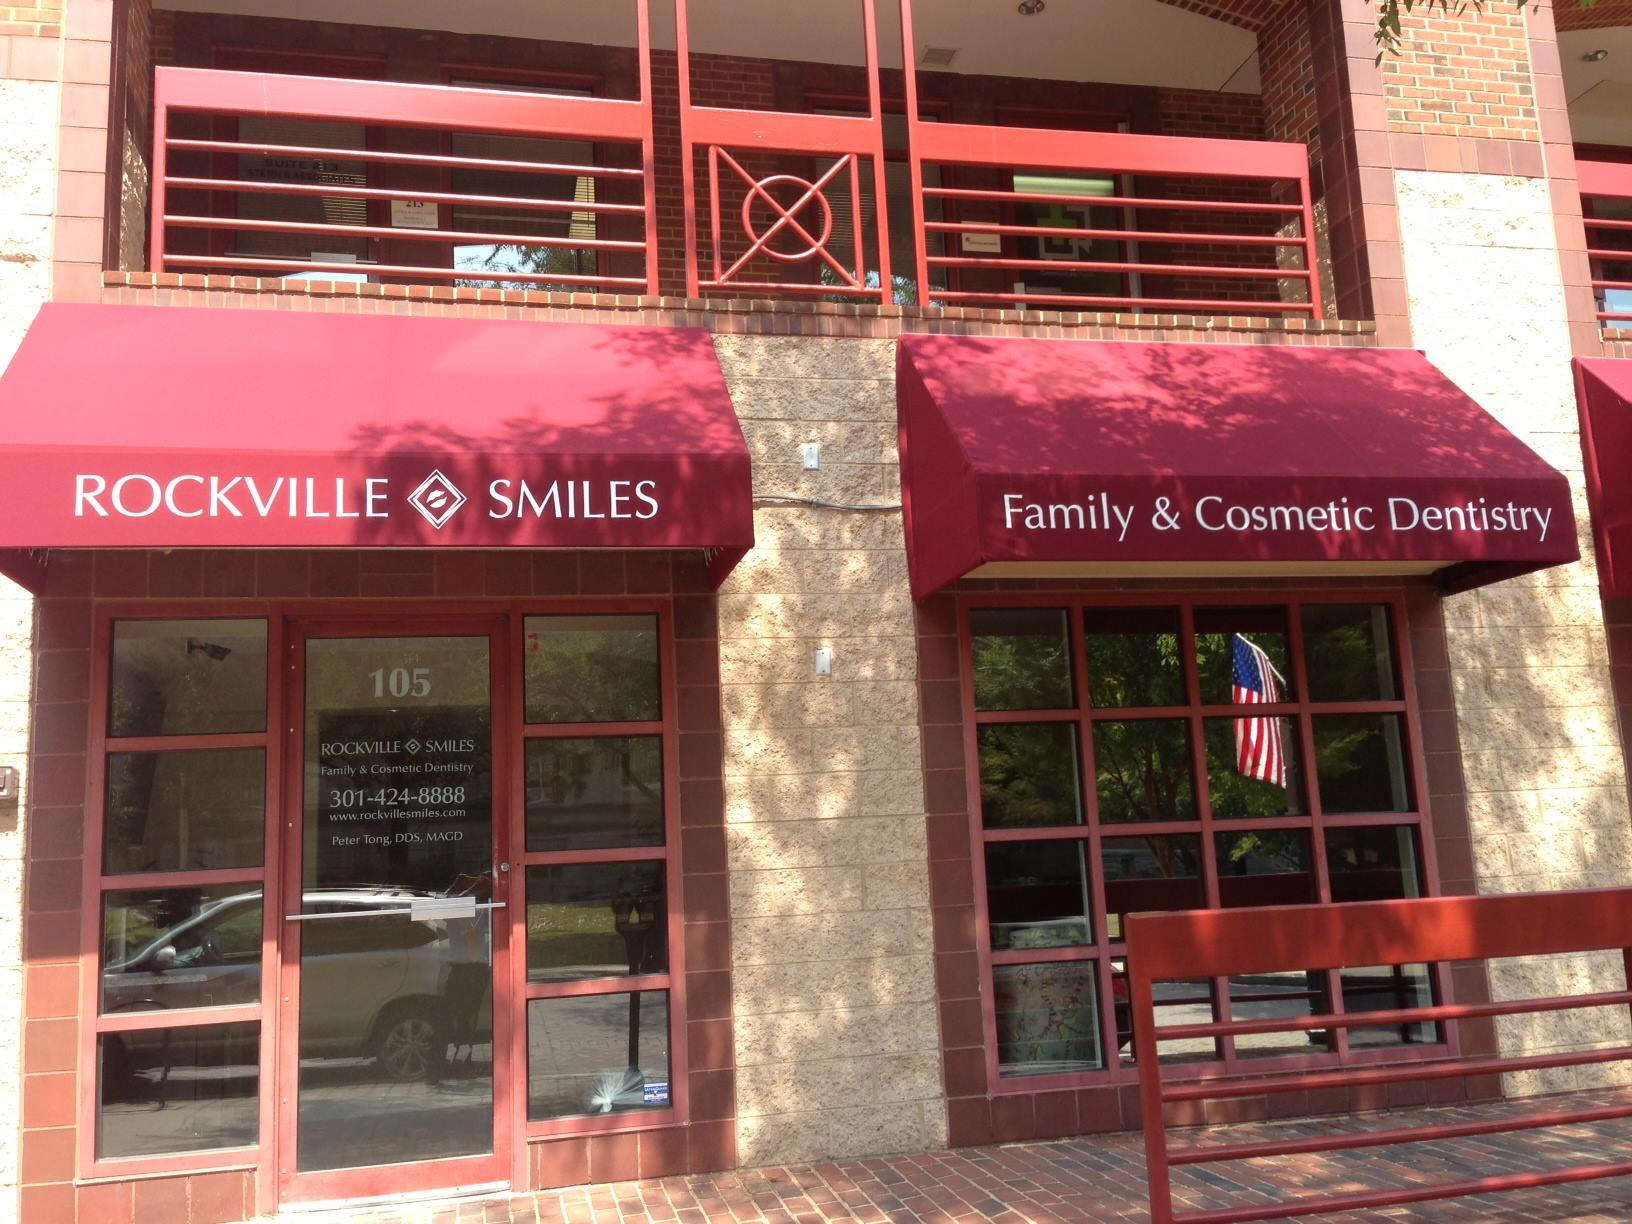 Rockville Smiles | Dentists at 20 Courthouse Square - Rockville MD - Reviews - Photos - Phone Number